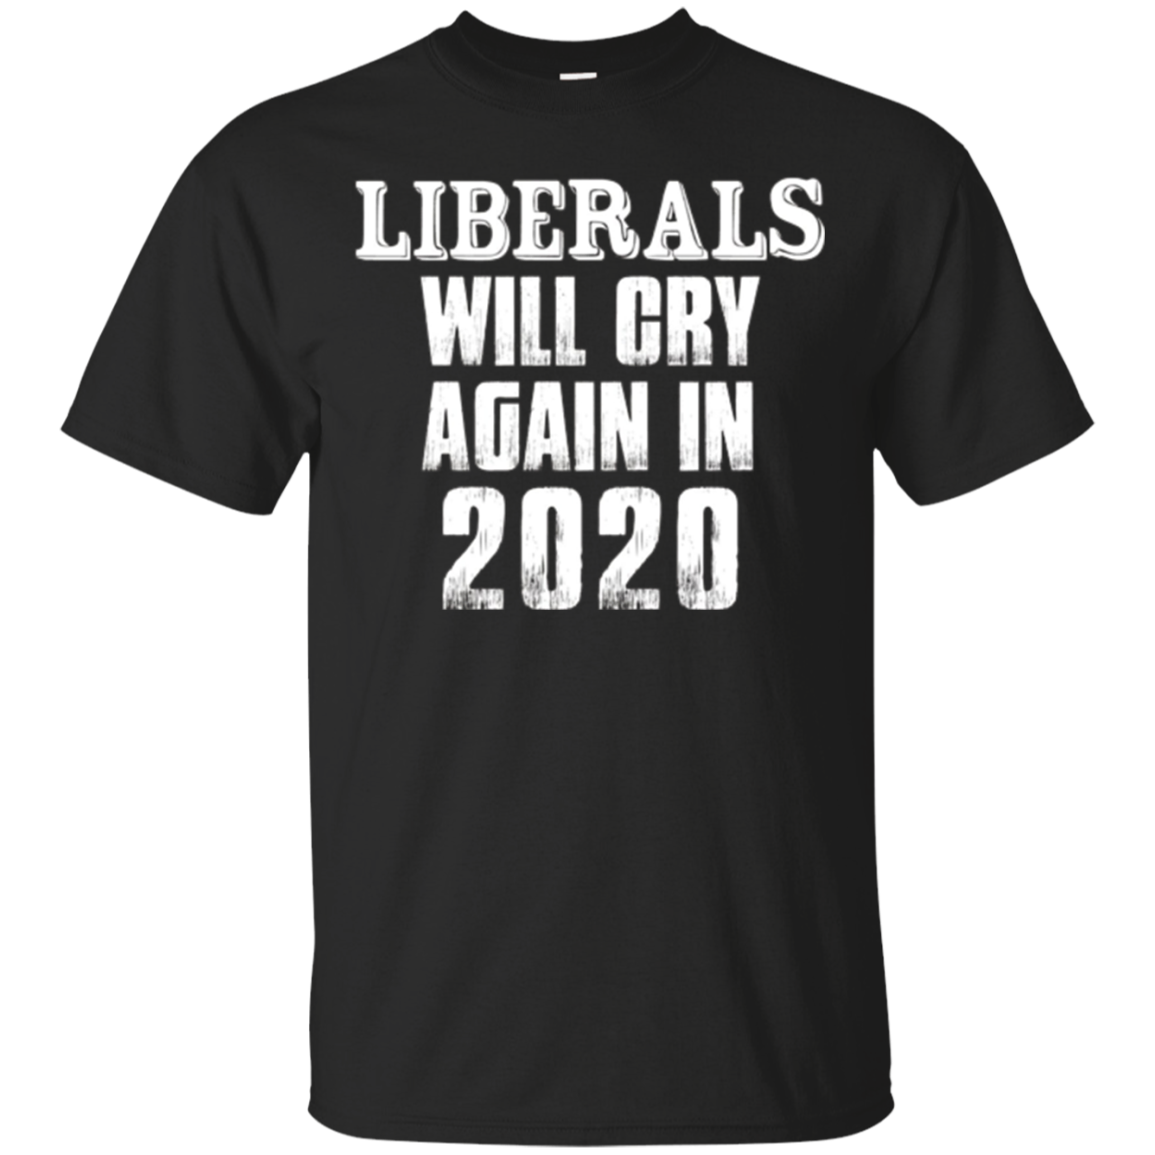 2020 Liberals will Cry Again Patriotic Conservative T-Shirt